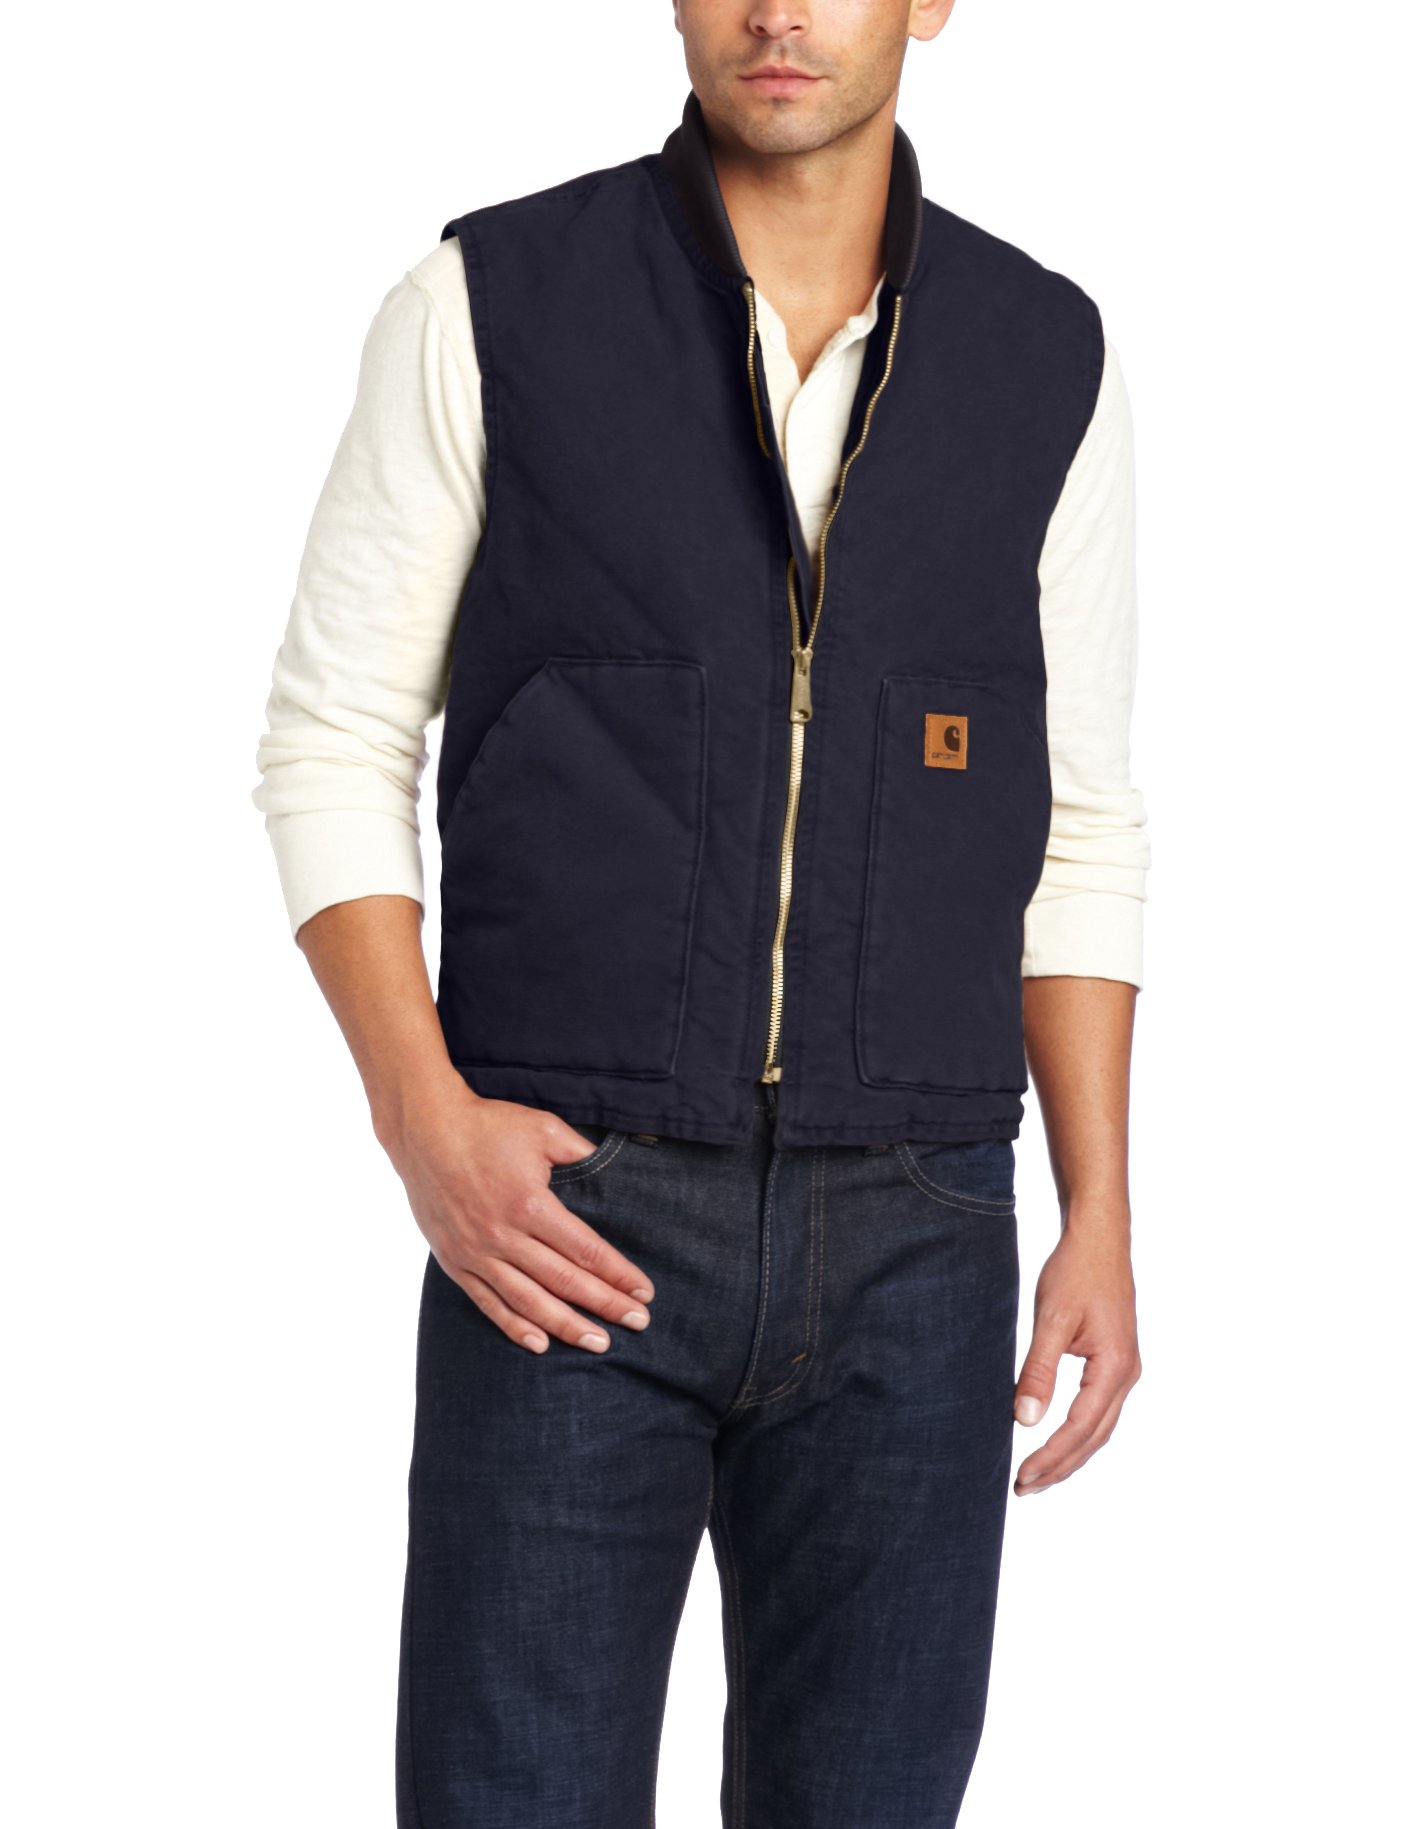 Carhartt Men's Sandstone Vest Arctic Quilt Lined,Midnight,Large